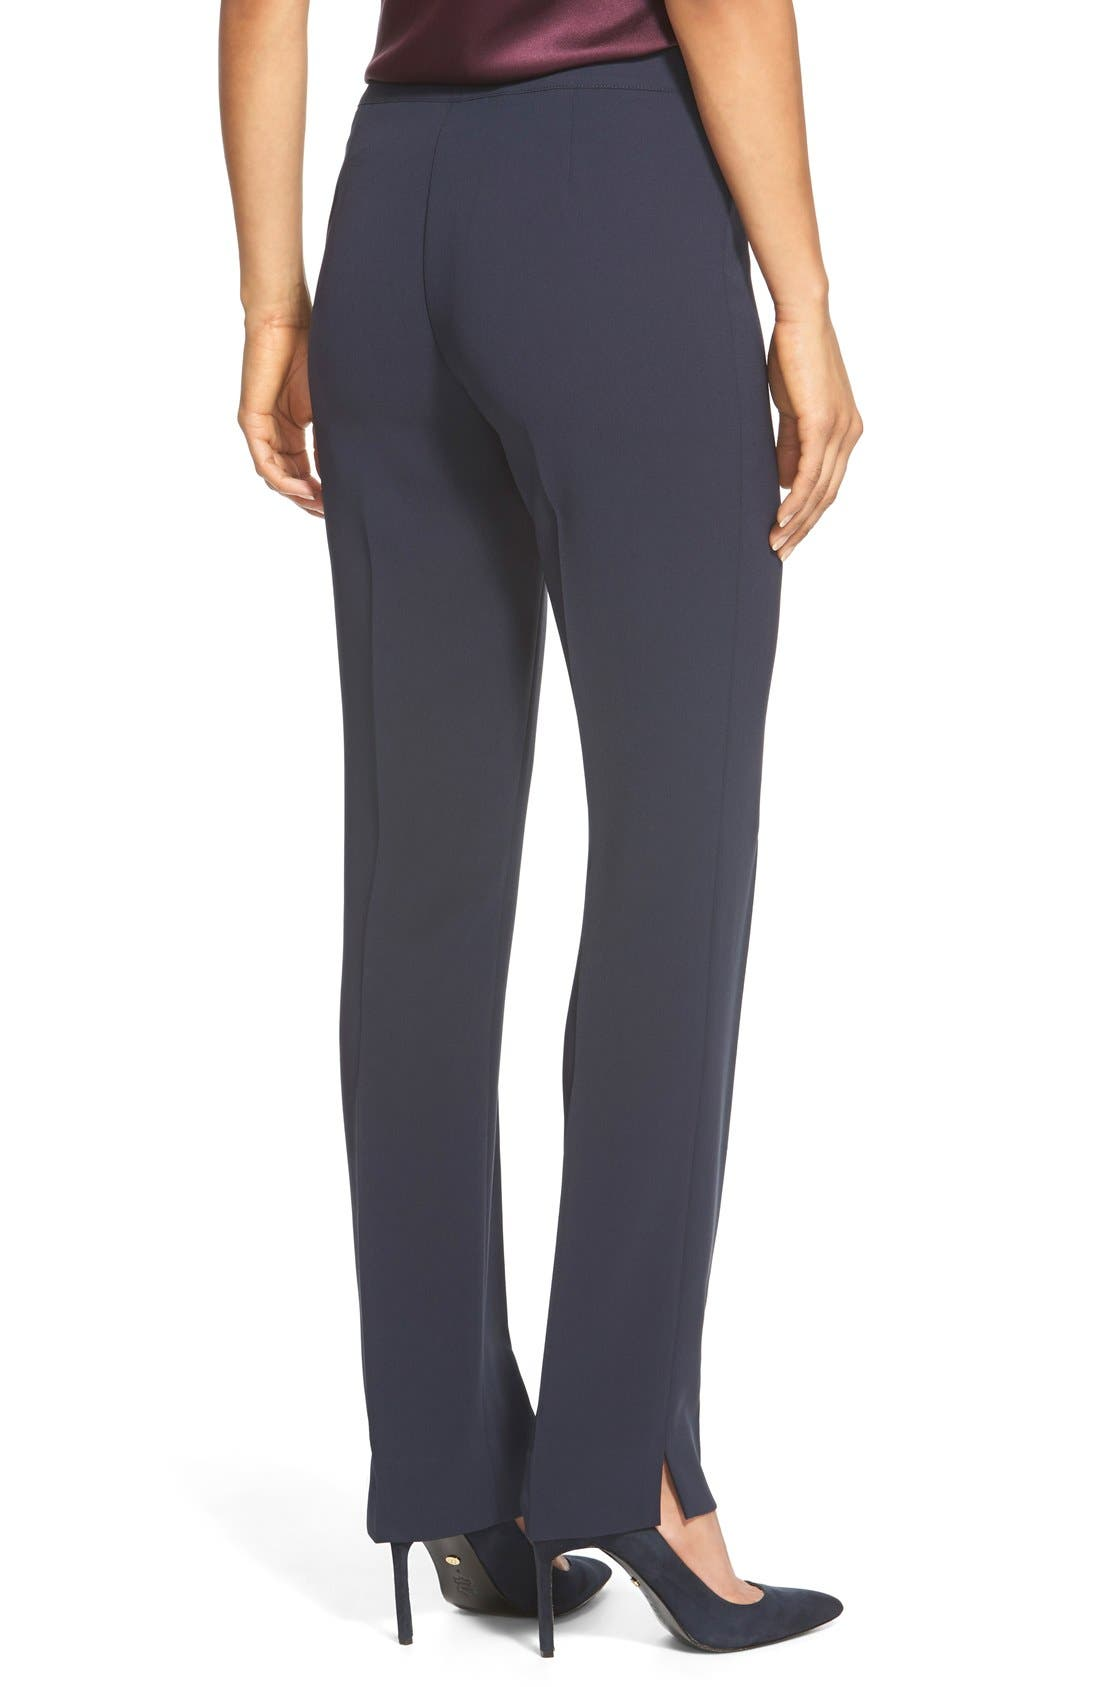 Alternate Image 2  - Lafayette 148 New York 'Bleecker - Finesse Crepe' Pants (Regular & Petite)